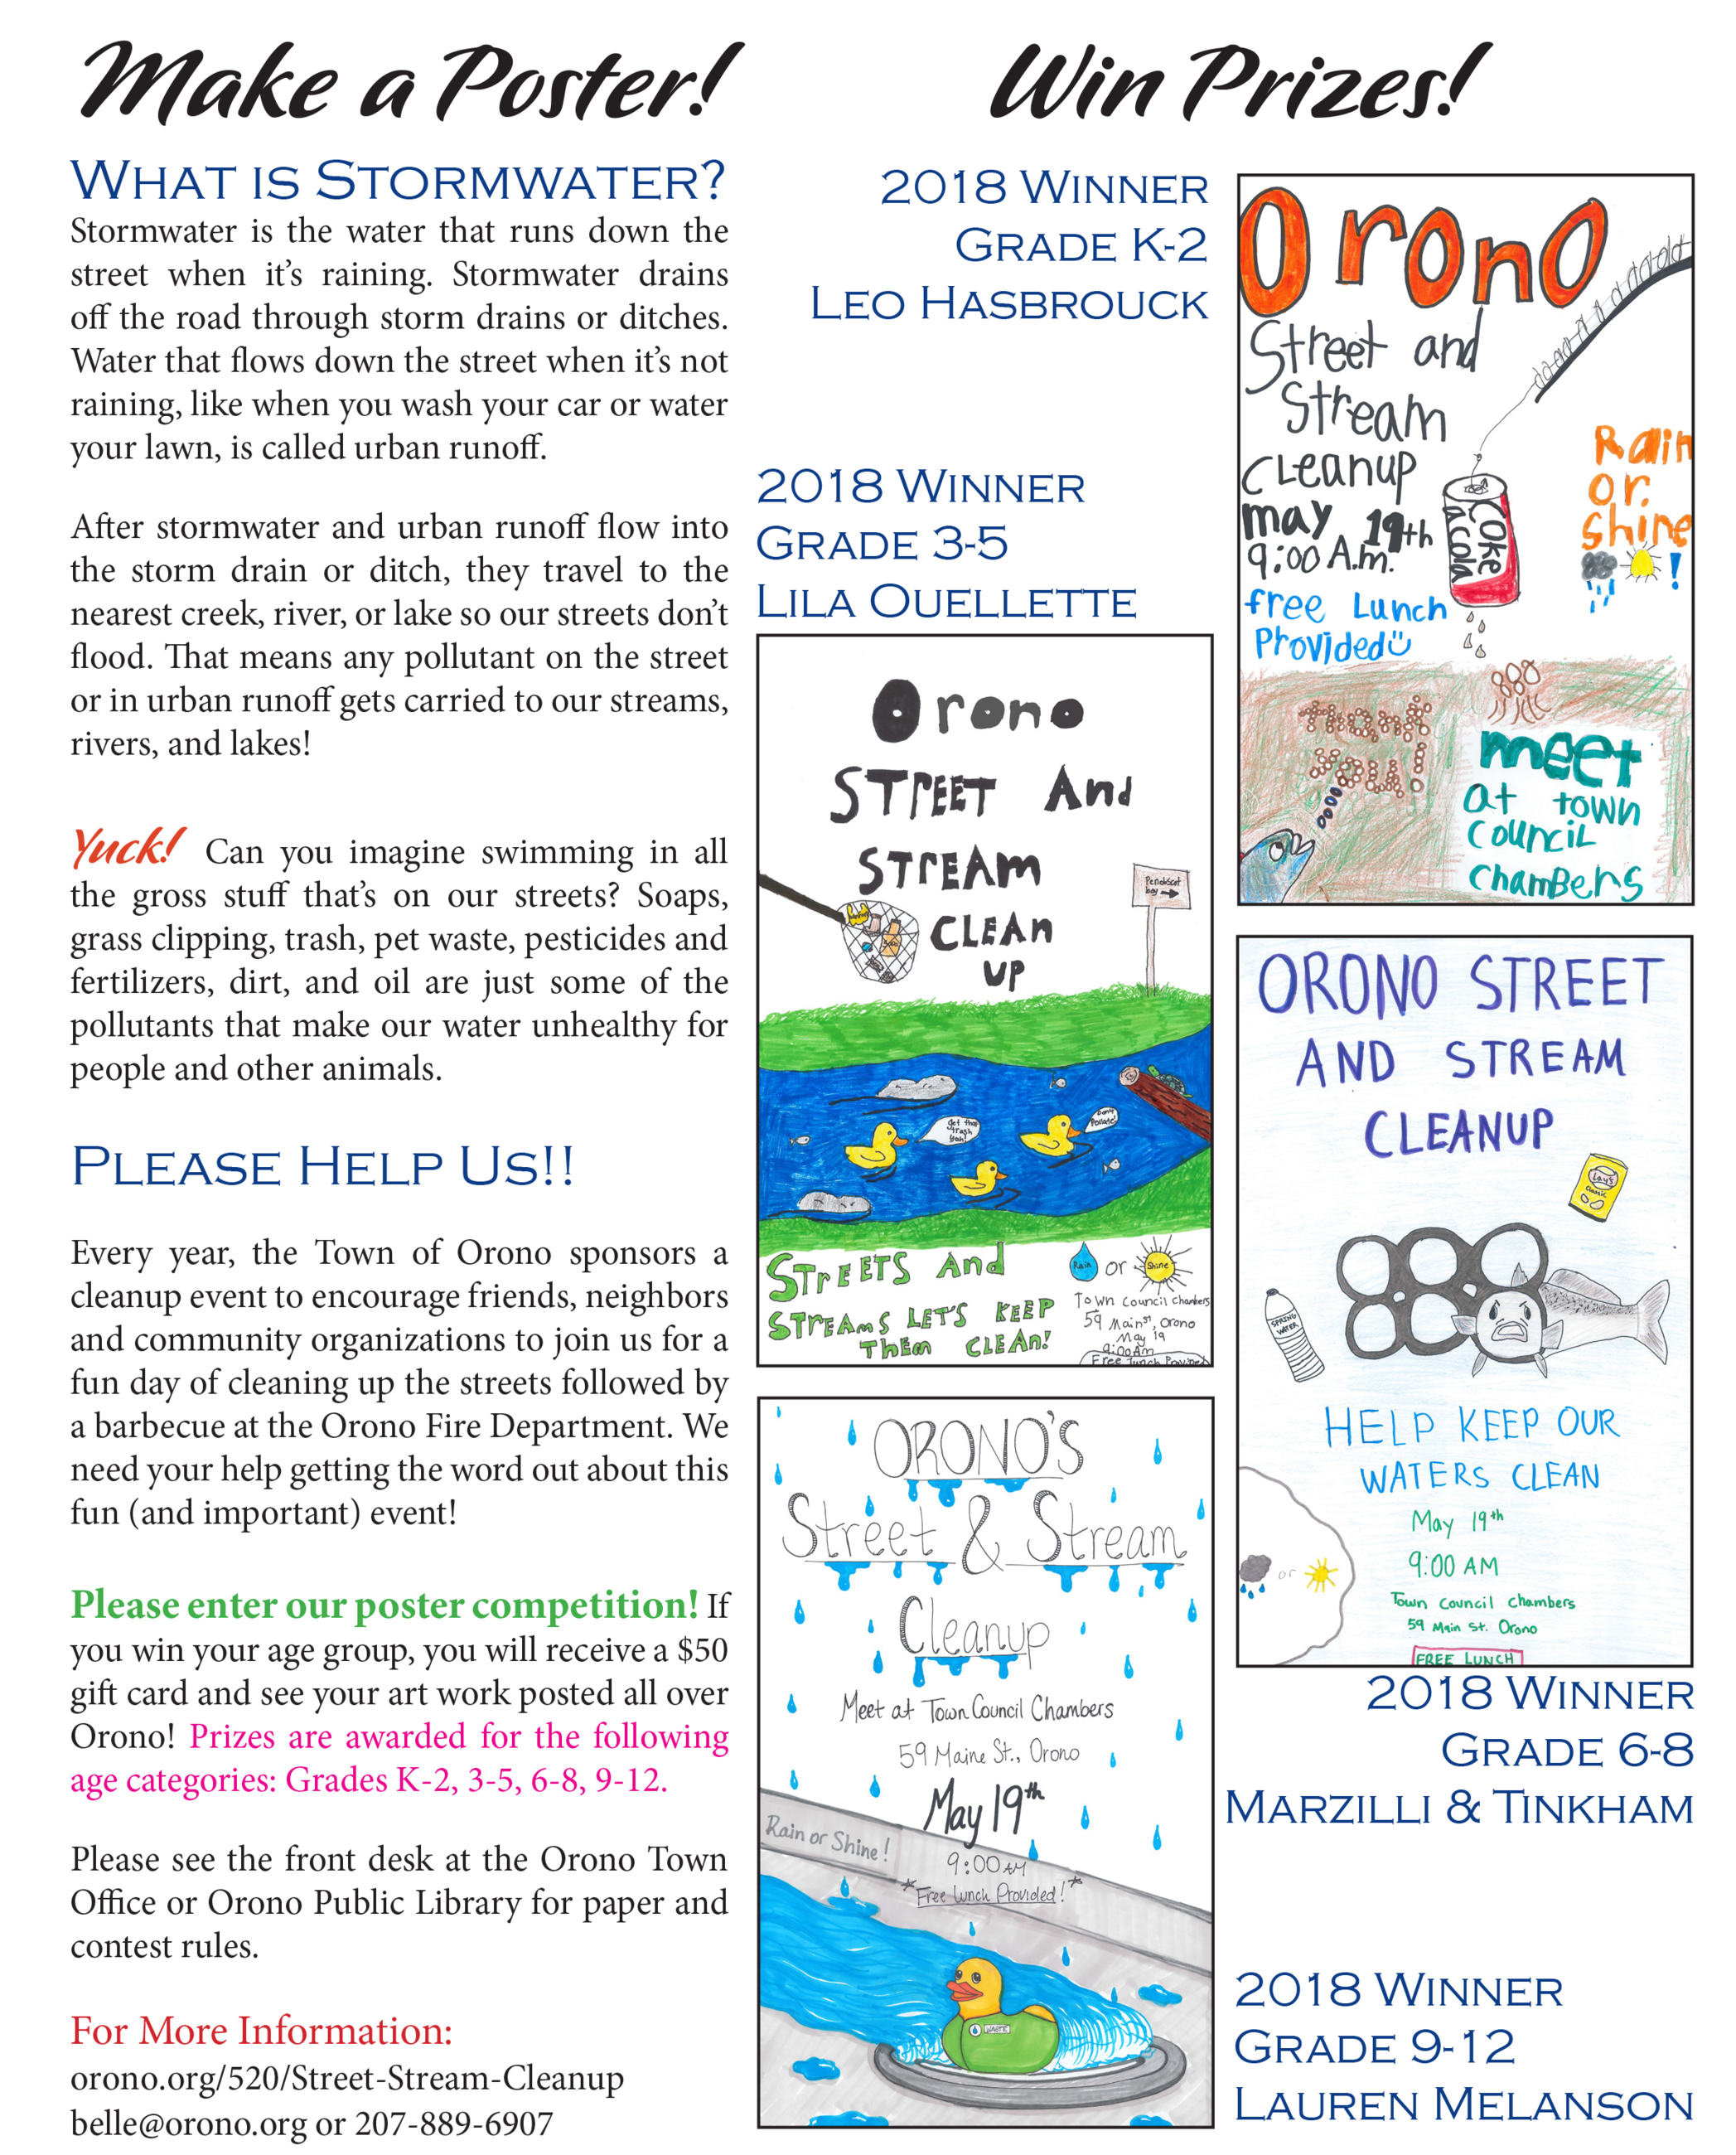 2019 Street & Stream Cleanup Poster Competition rules - click for screen-readable pdf